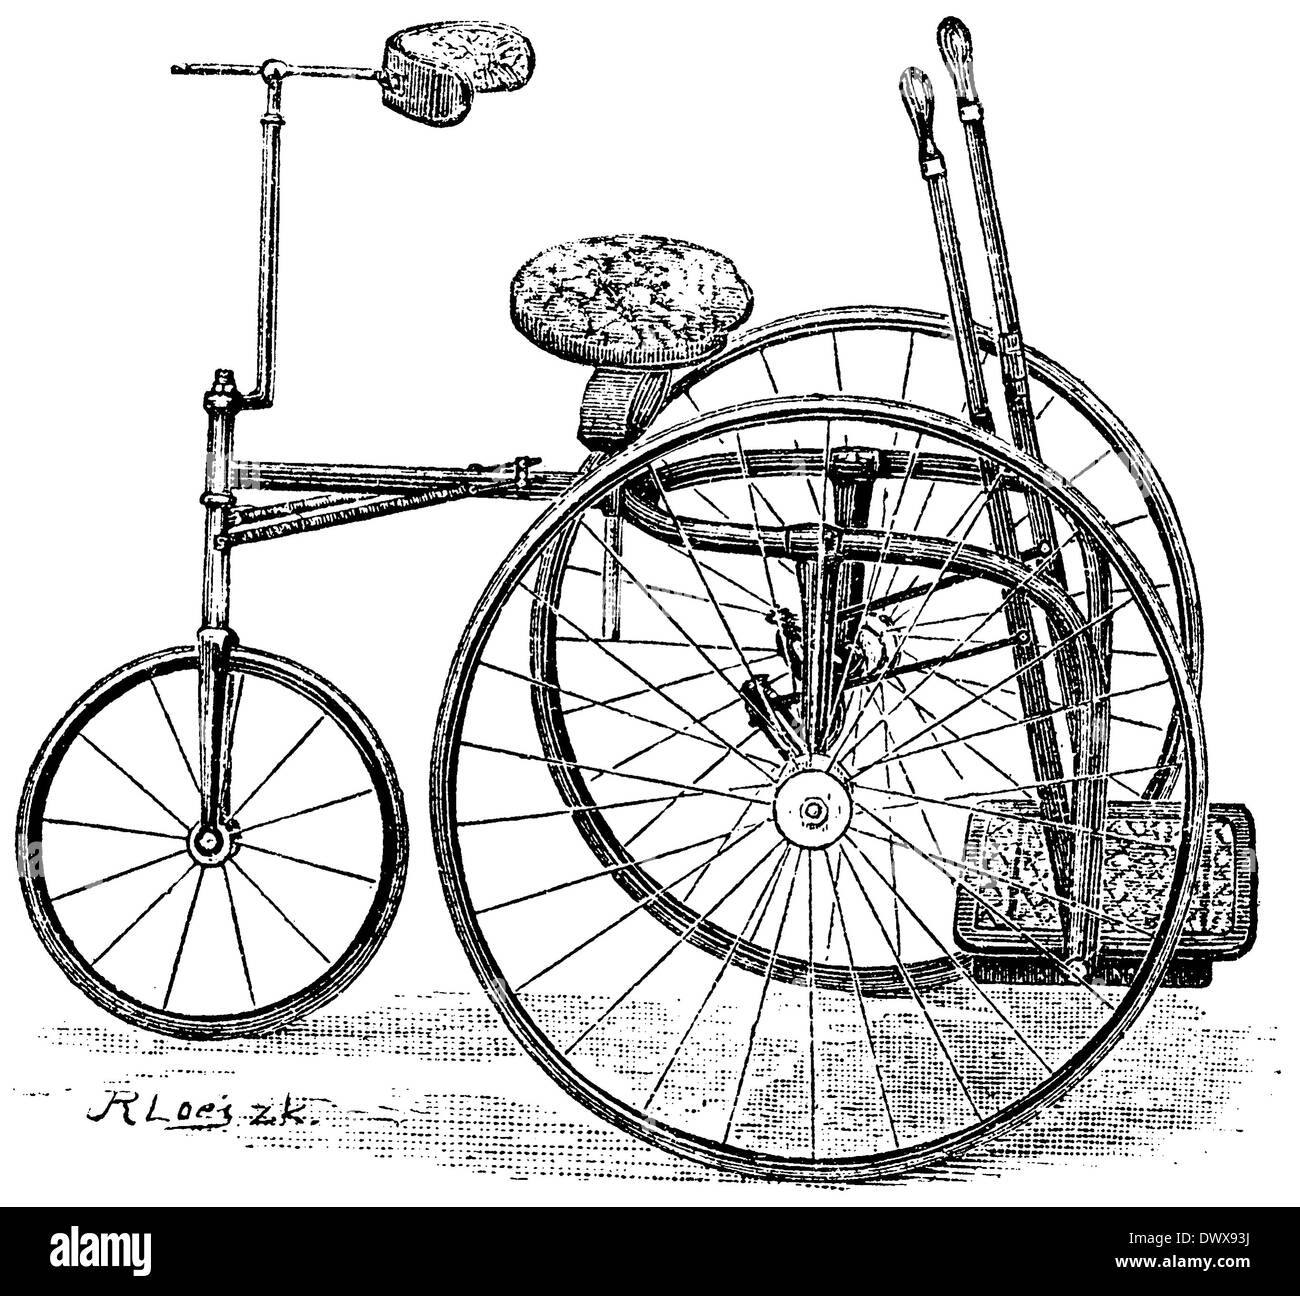 hand-operated tricycle - Stock Image